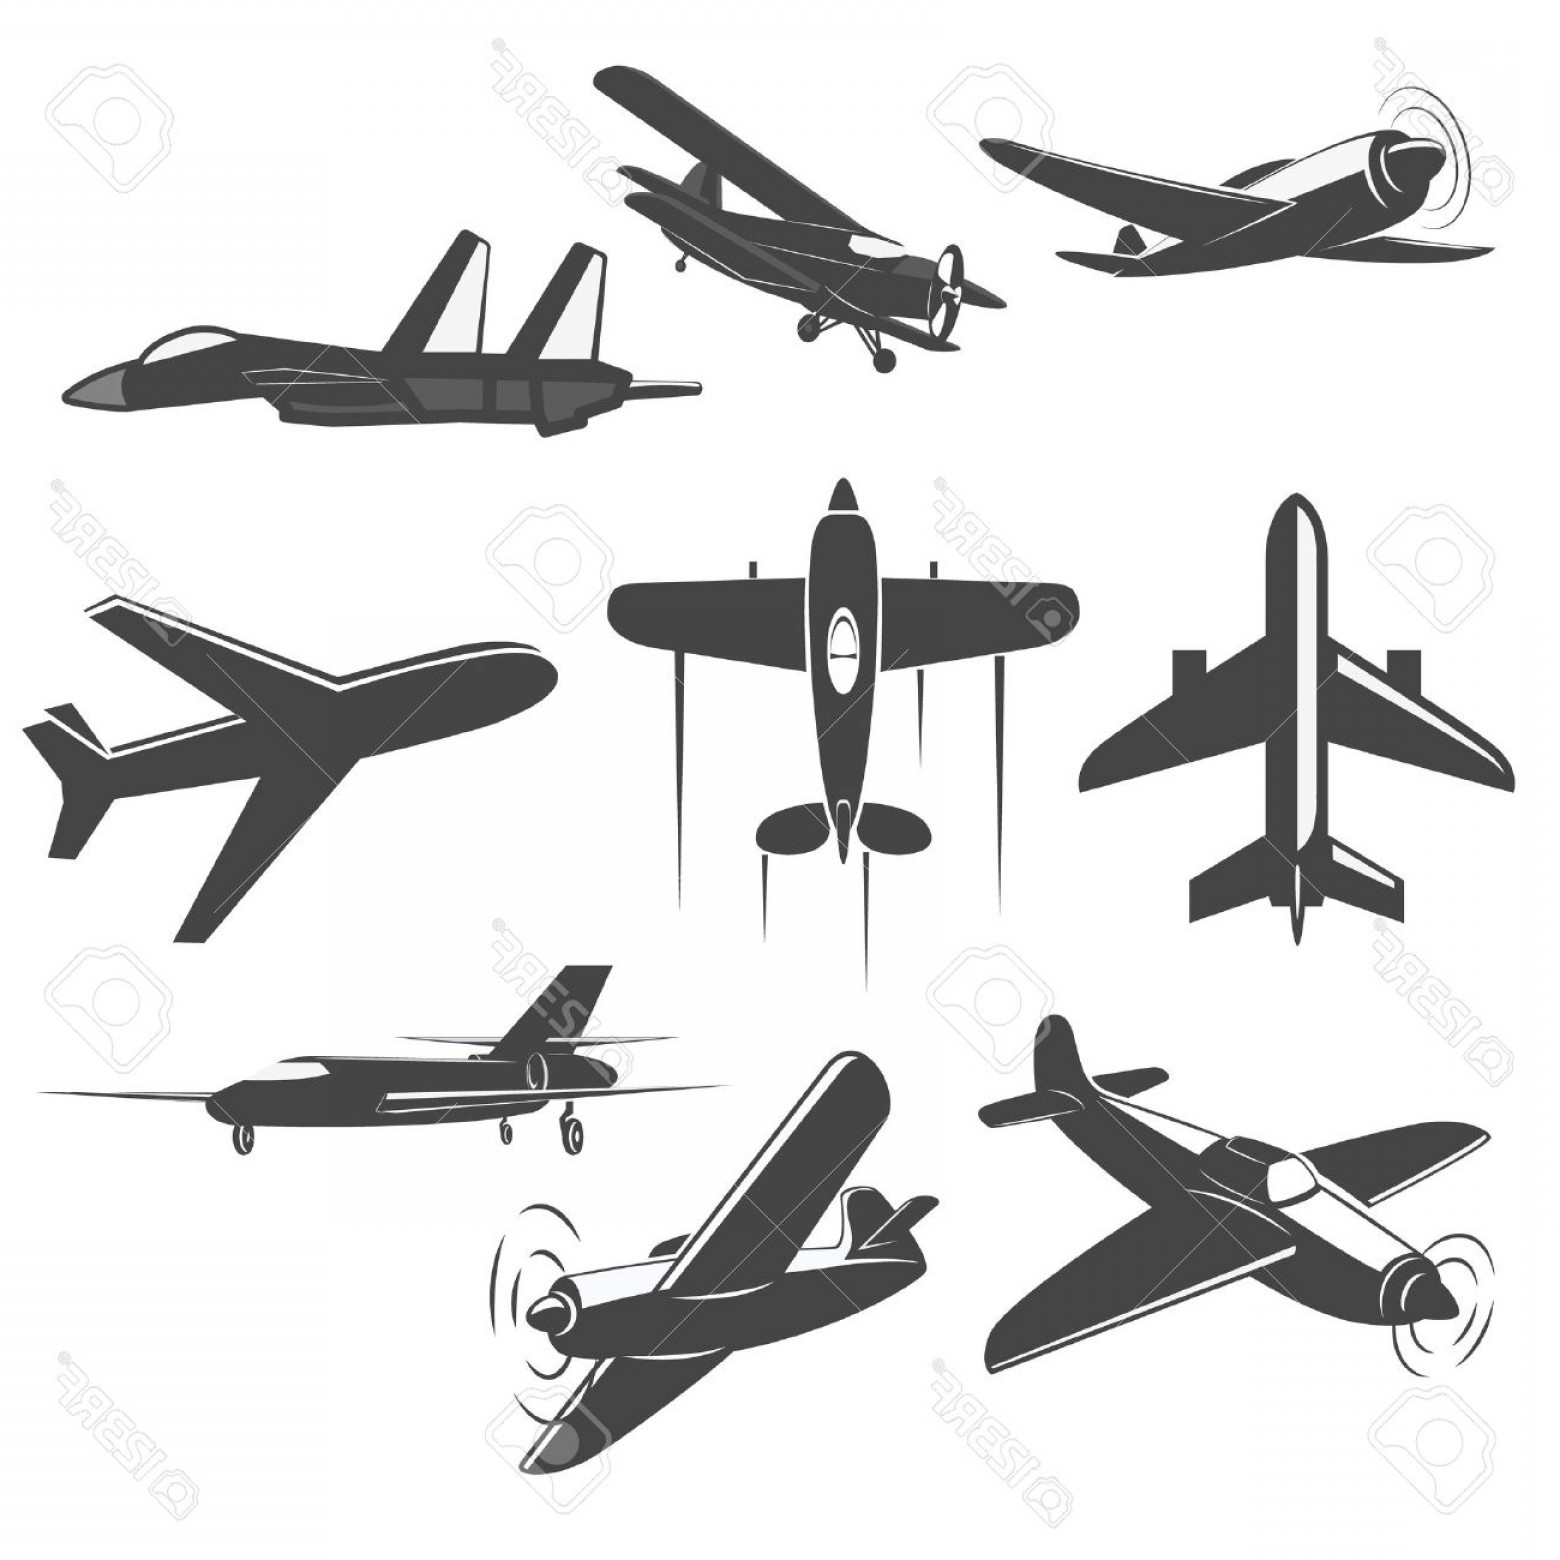 Old School Airplane Fighter Silhouette Vector: Photostock Vector Set Of Vintage Airplanes From Different Angles Planes Silhouettes Battle Plane Logotype Emblem Label